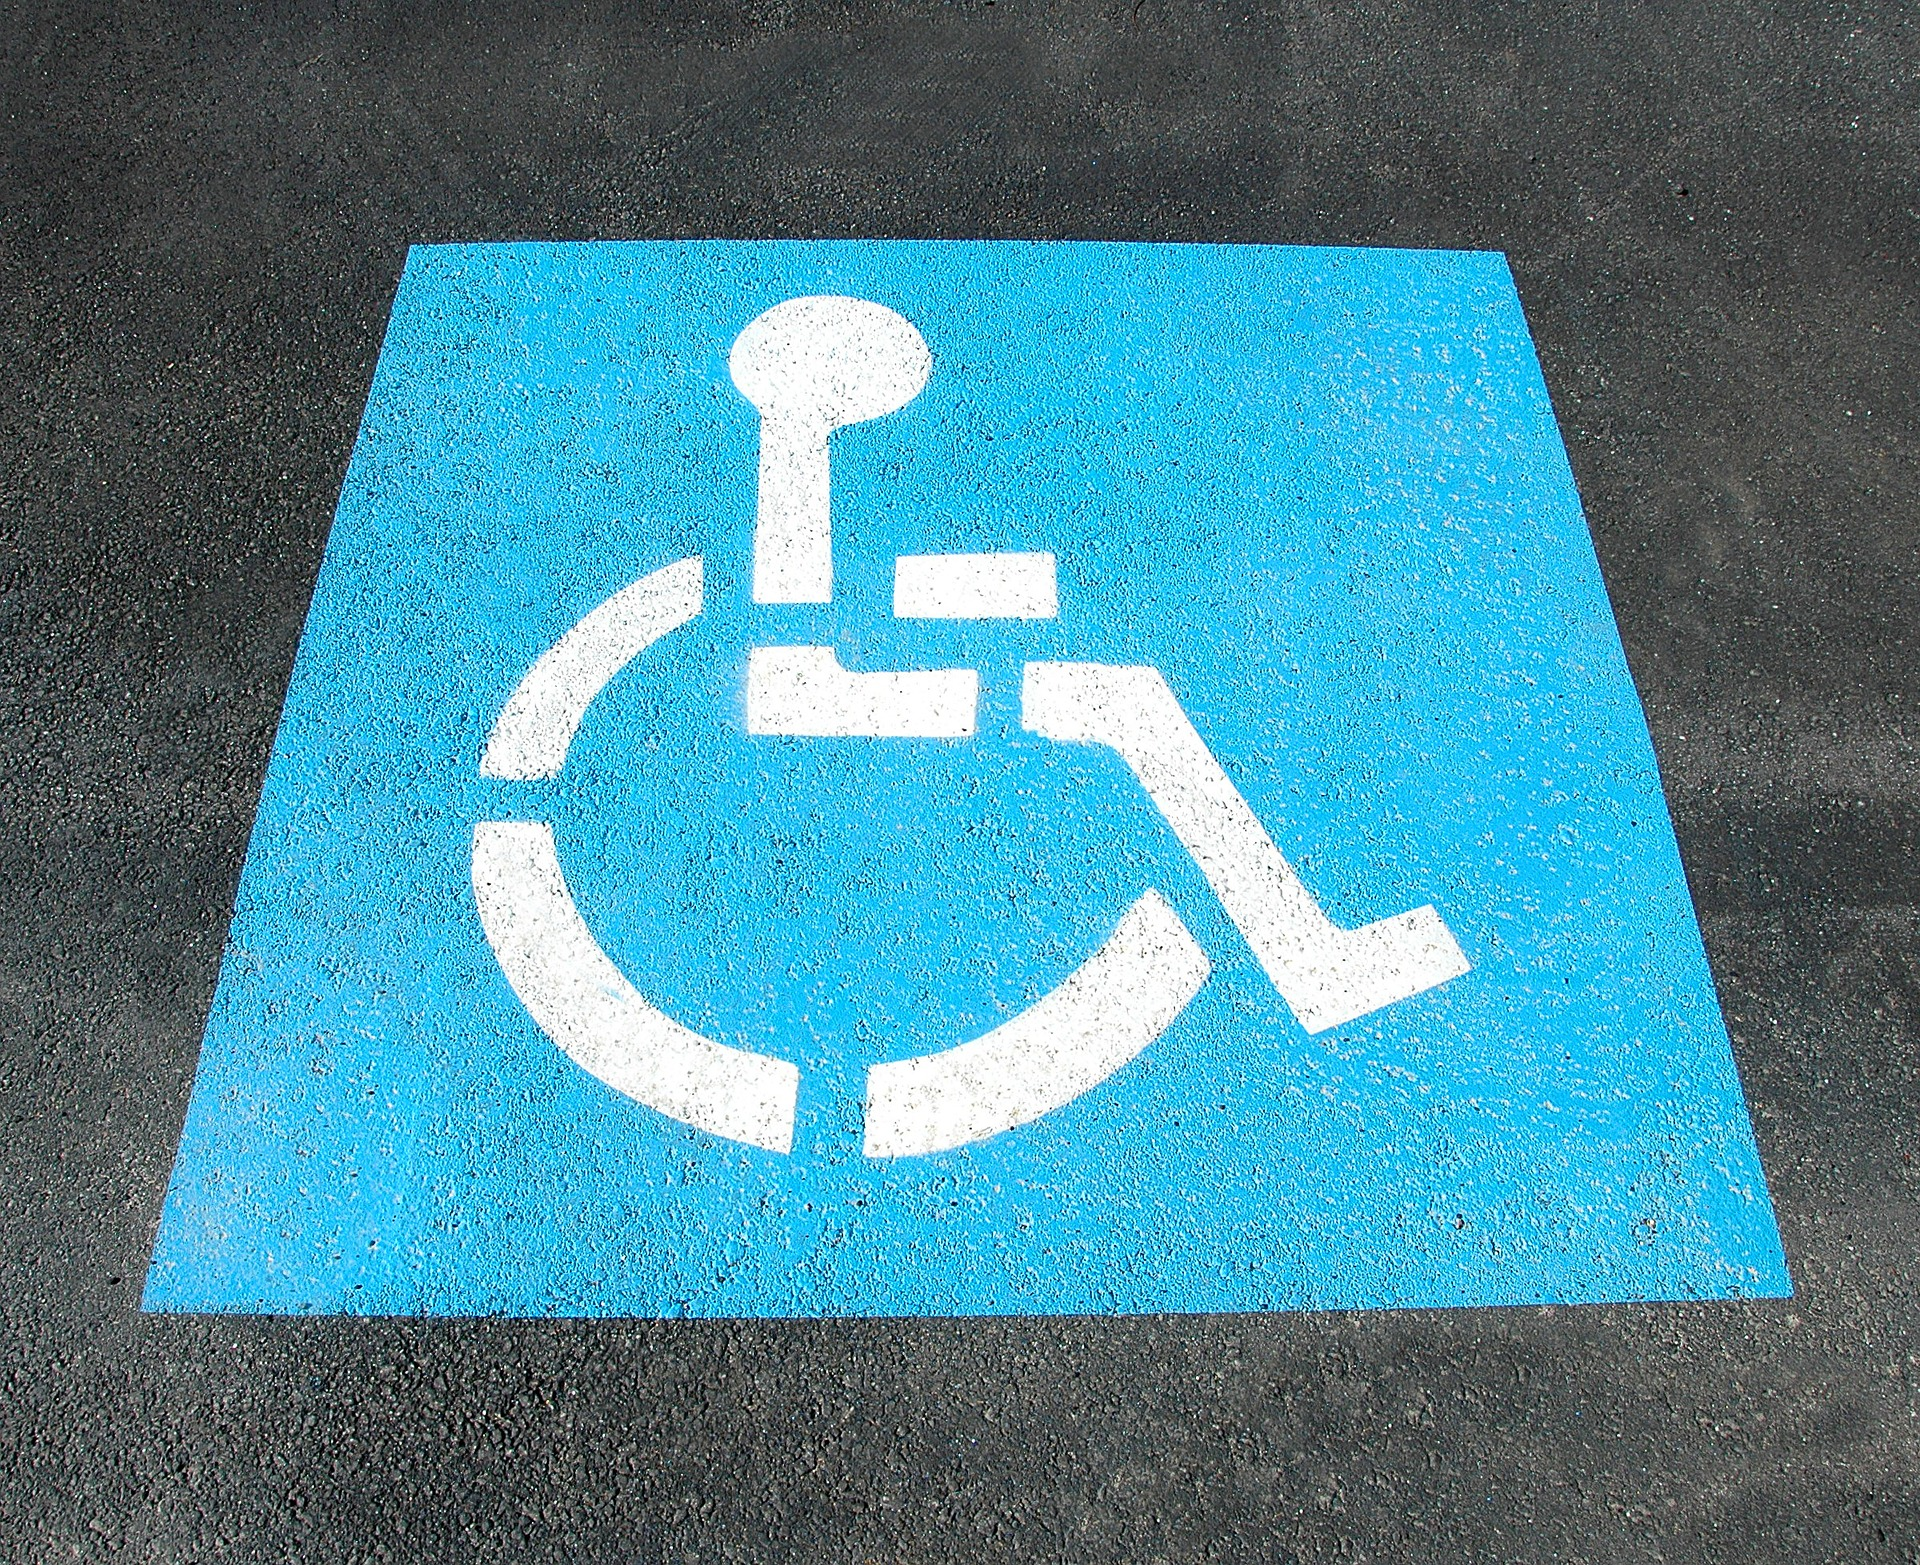 handicap-parking-2328893_1920